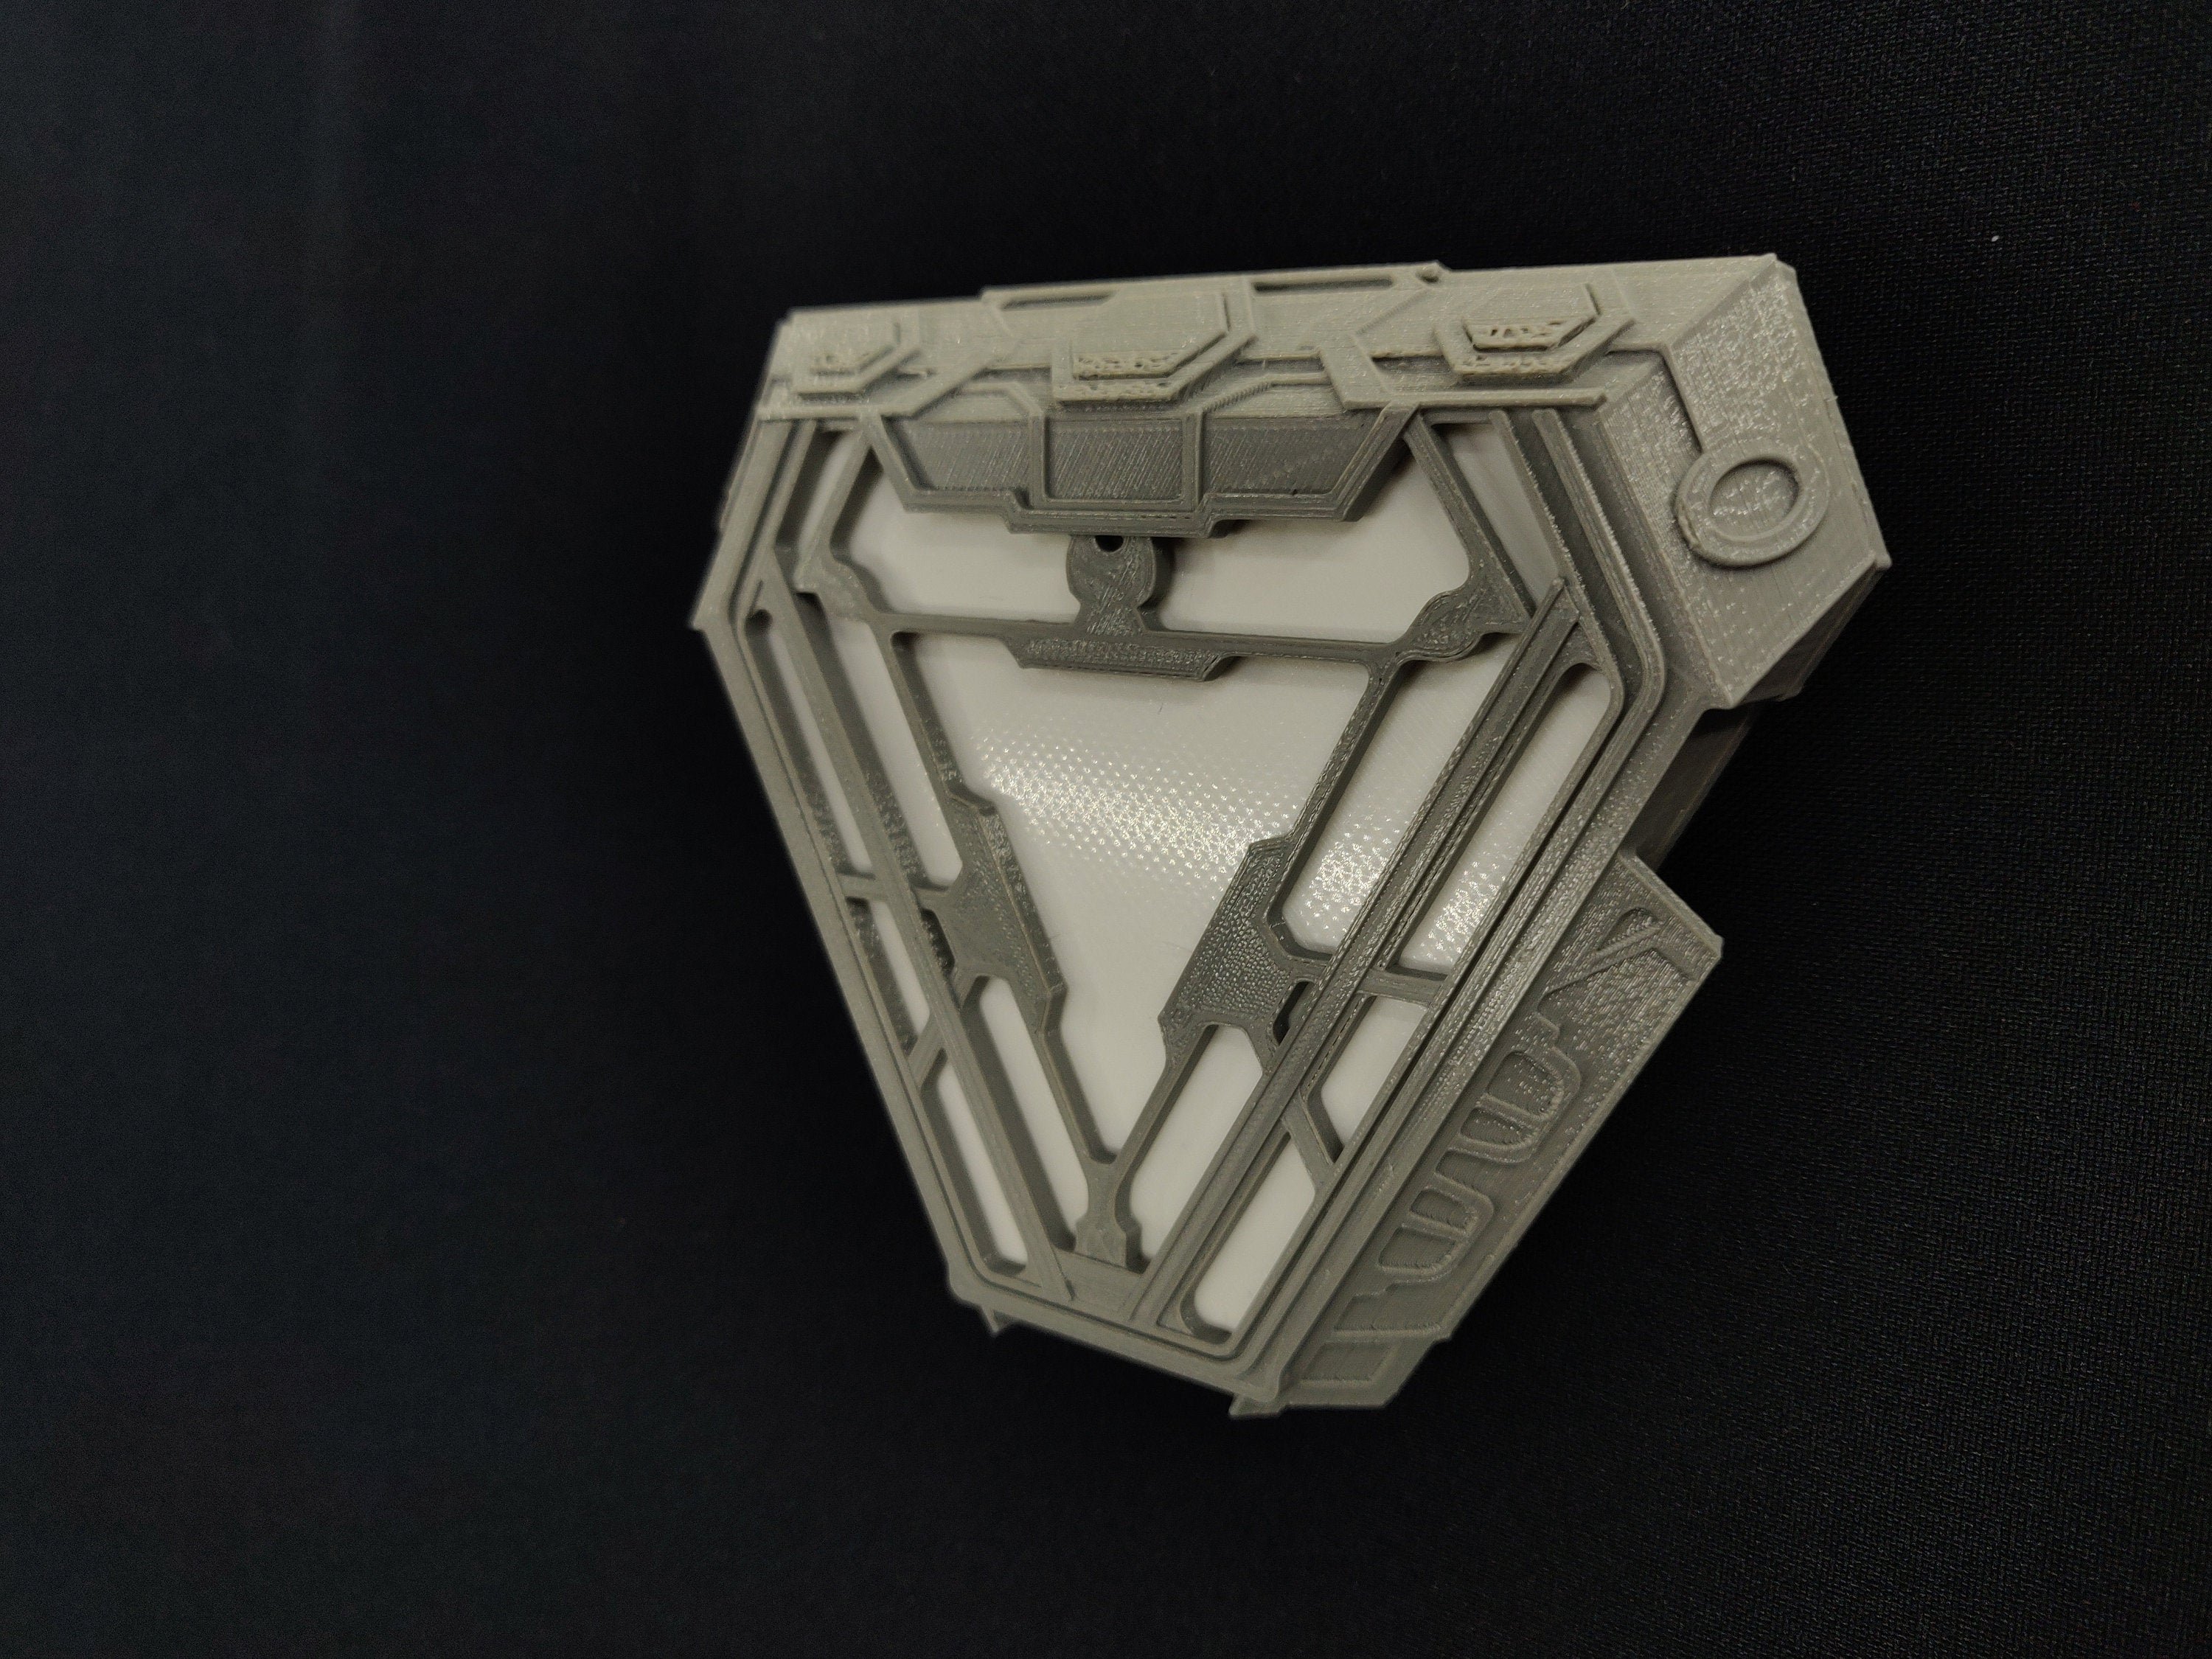 MK50 Ark Reactor Sci-fi Replica Prop - 3D Printed with LED Light